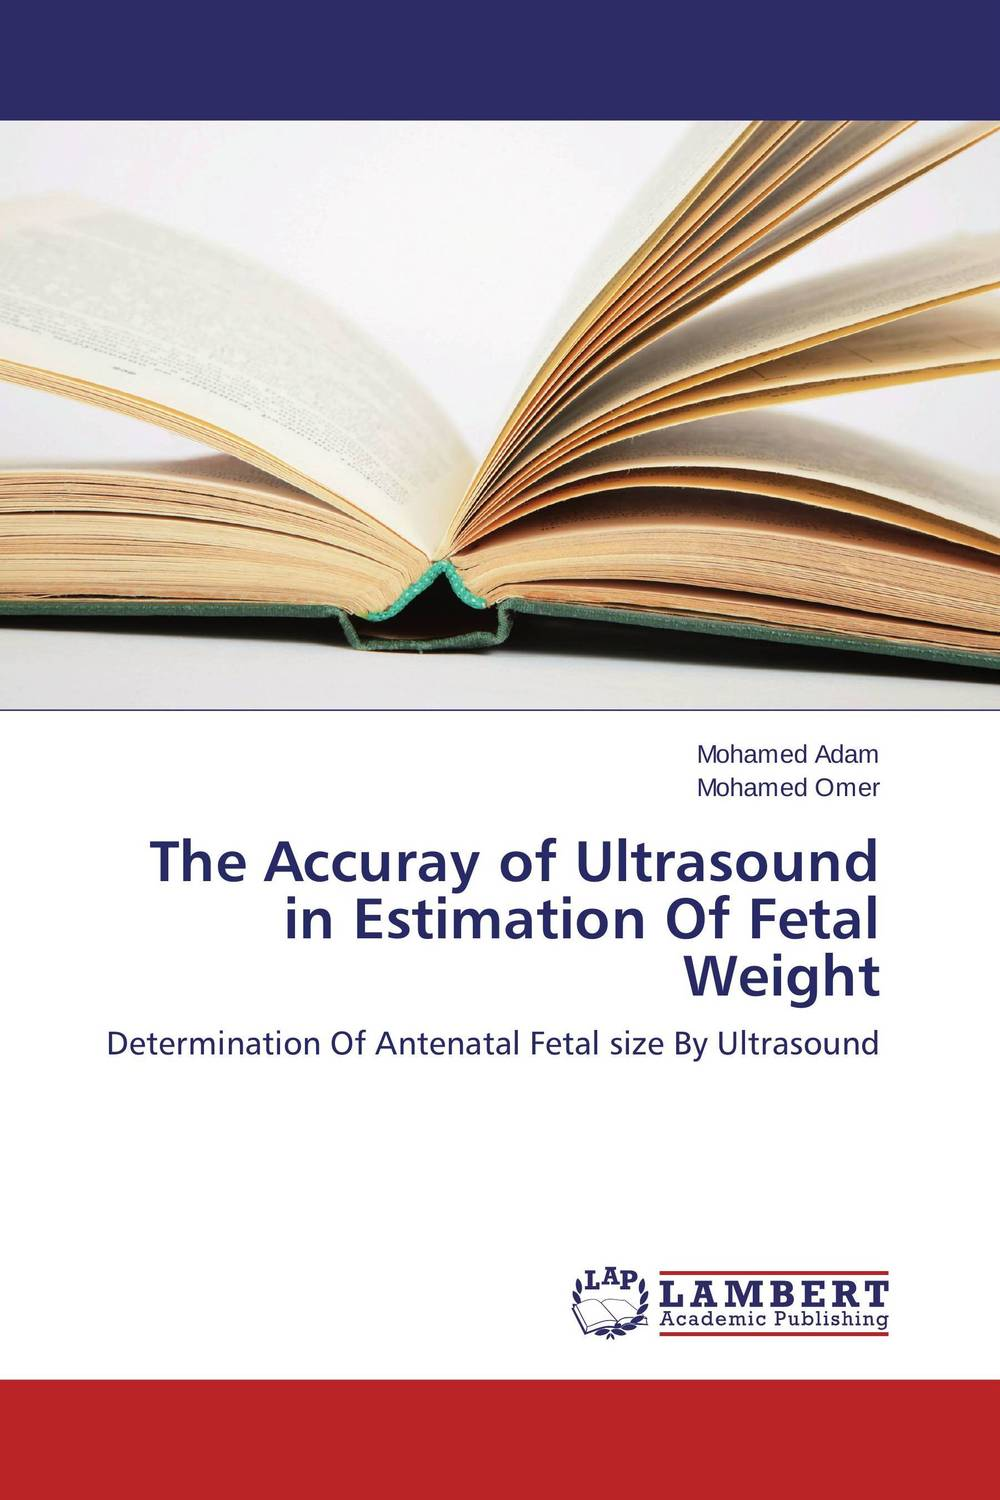 The Accuray of Ultrasound in Estimation  Of Fetal Weight role of ultrasound in dentistry